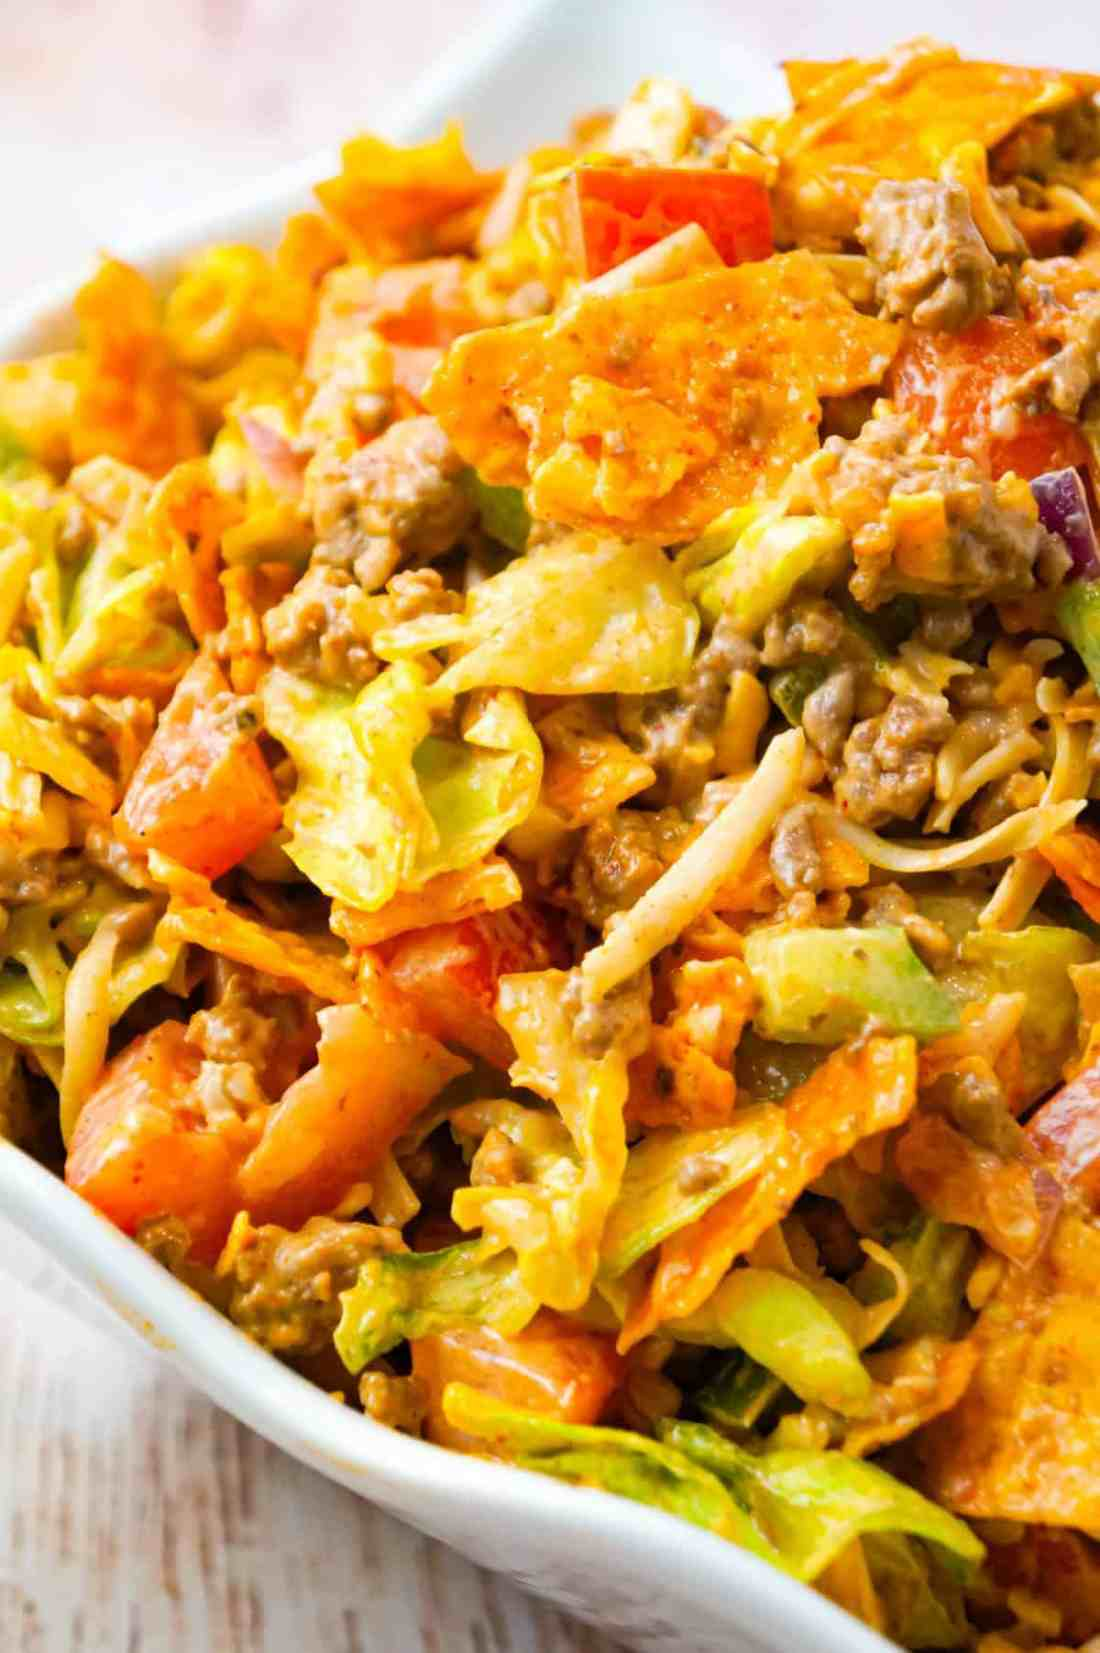 Doritos Taco Salad is a delicious salad loaded with iceberg lettuce, red onions, green peppers, tomatoes, shredded cheese, ground beef and crumbled Doritos all tossed in salsa and ranch dressing.